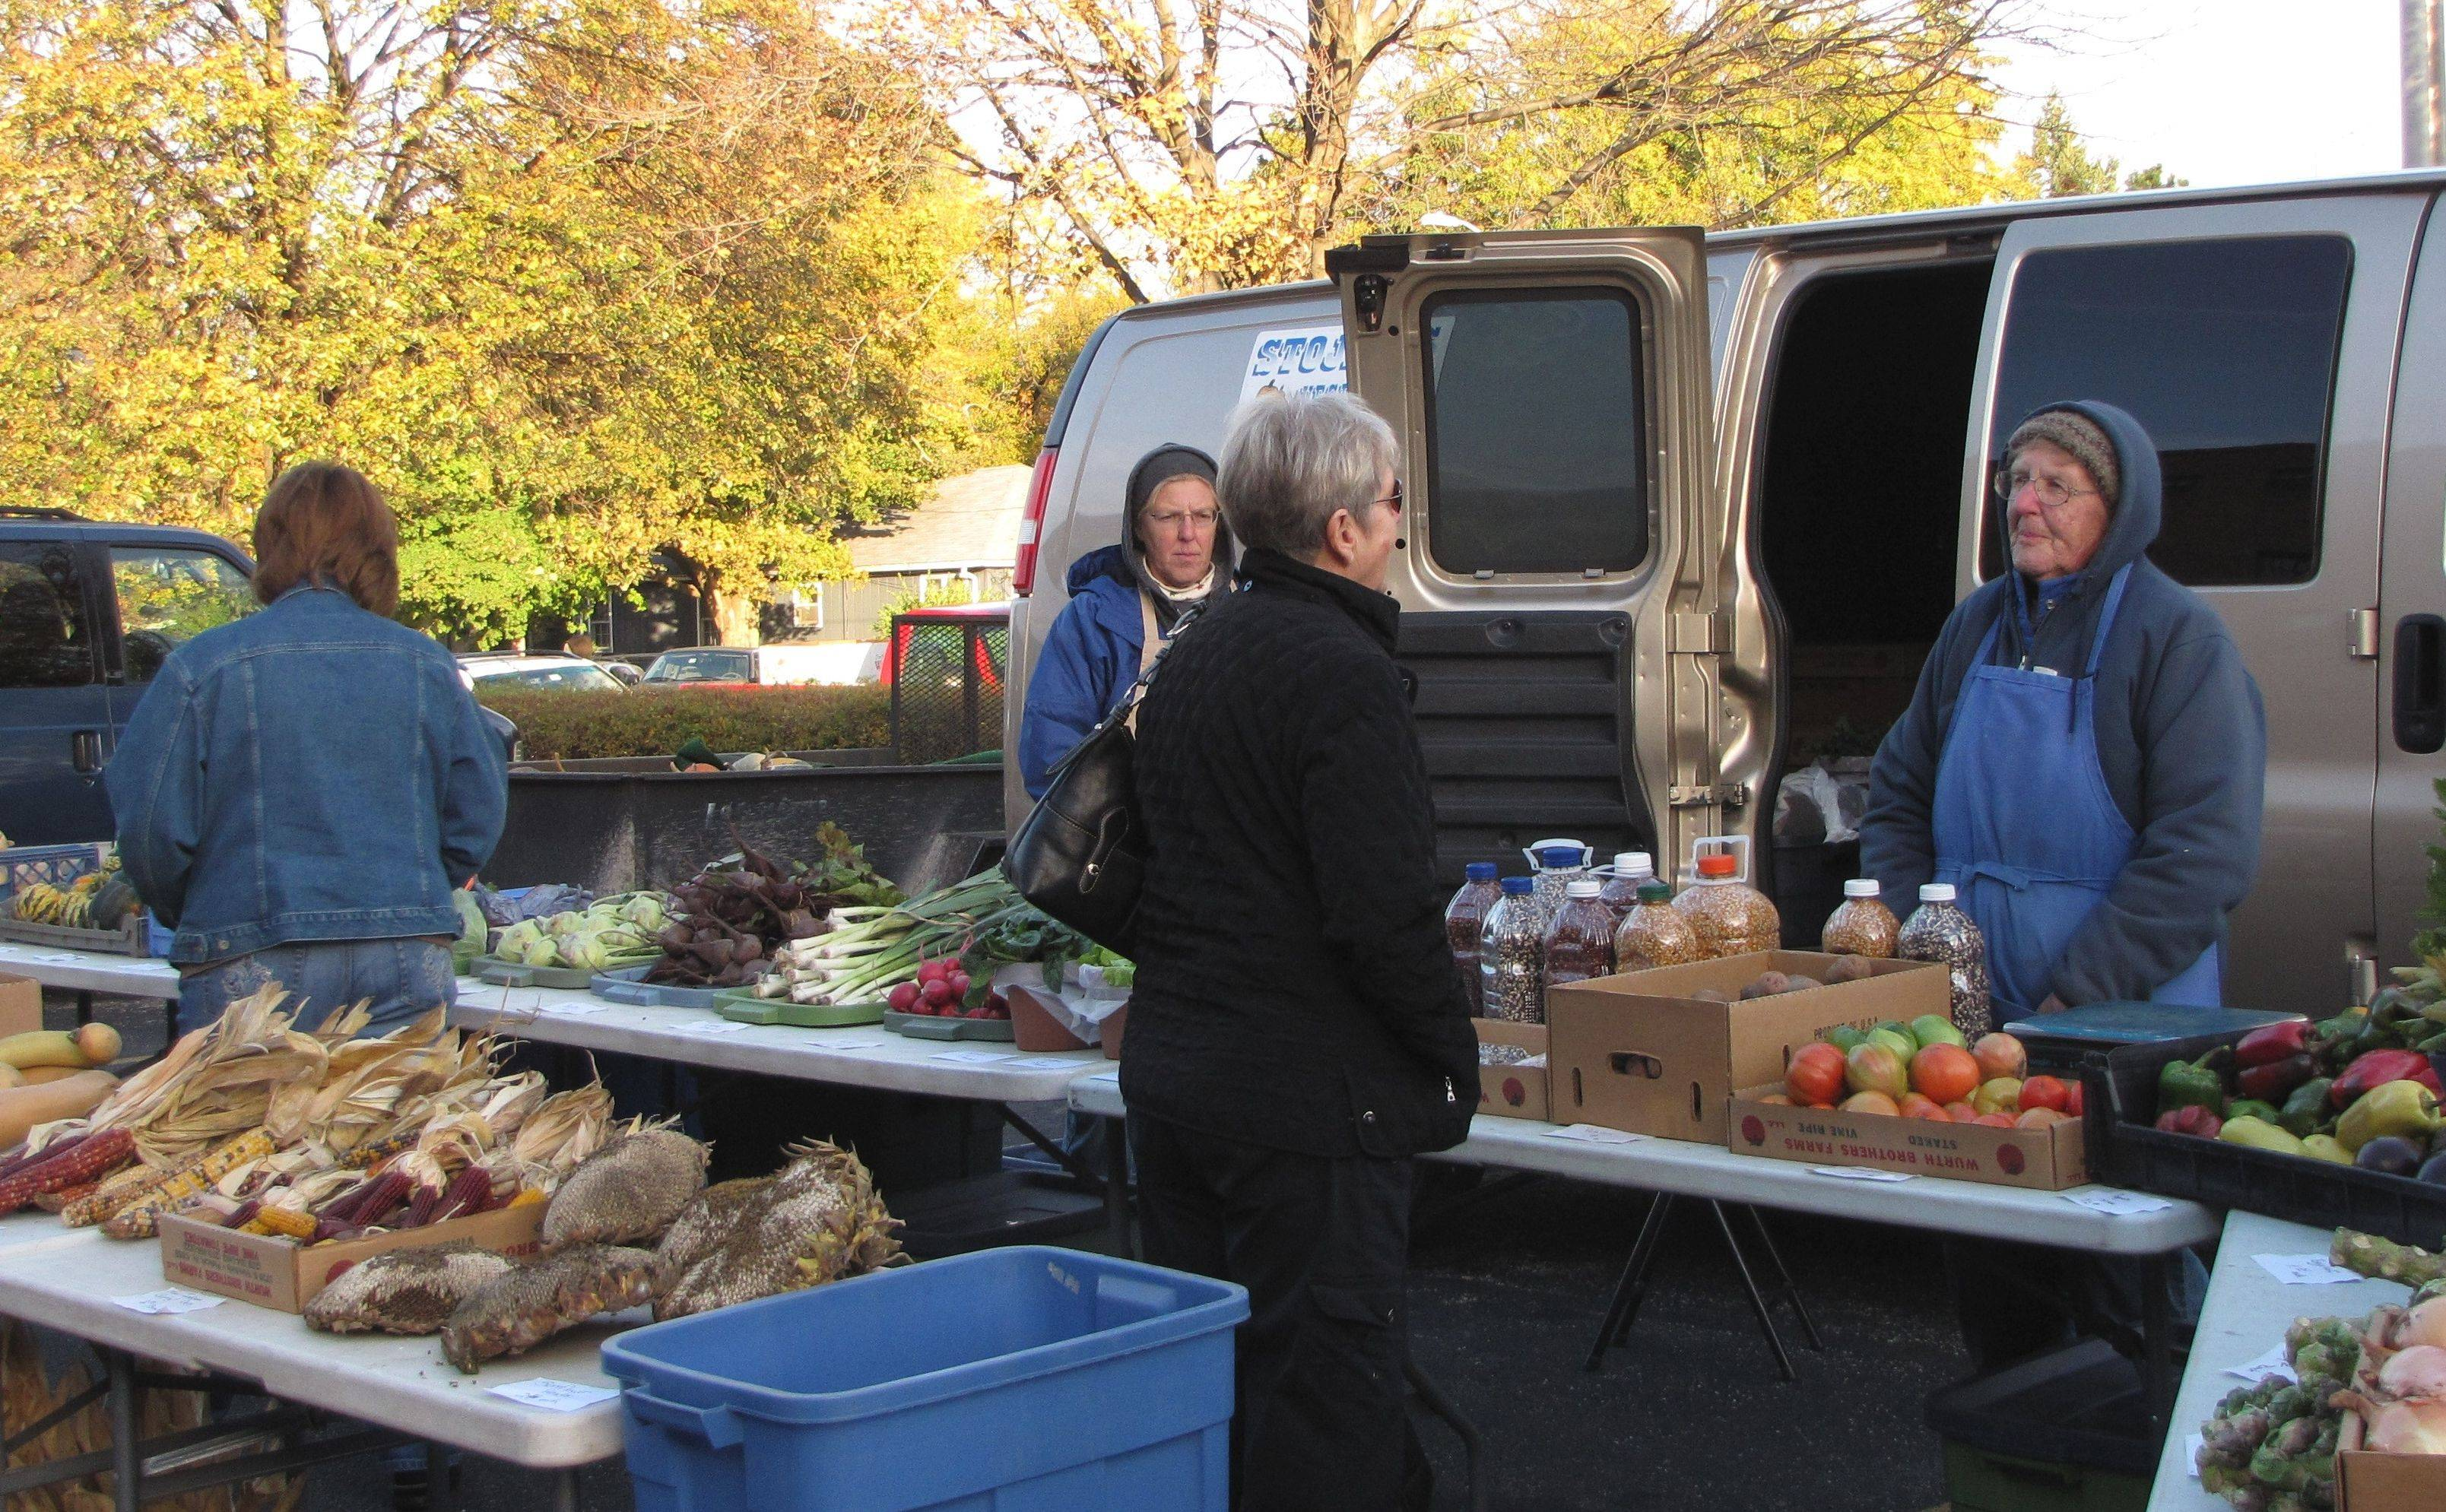 As autumn arrives and the season changes, new crops of vegetables appear at outdoor markets throughout the suburbs.